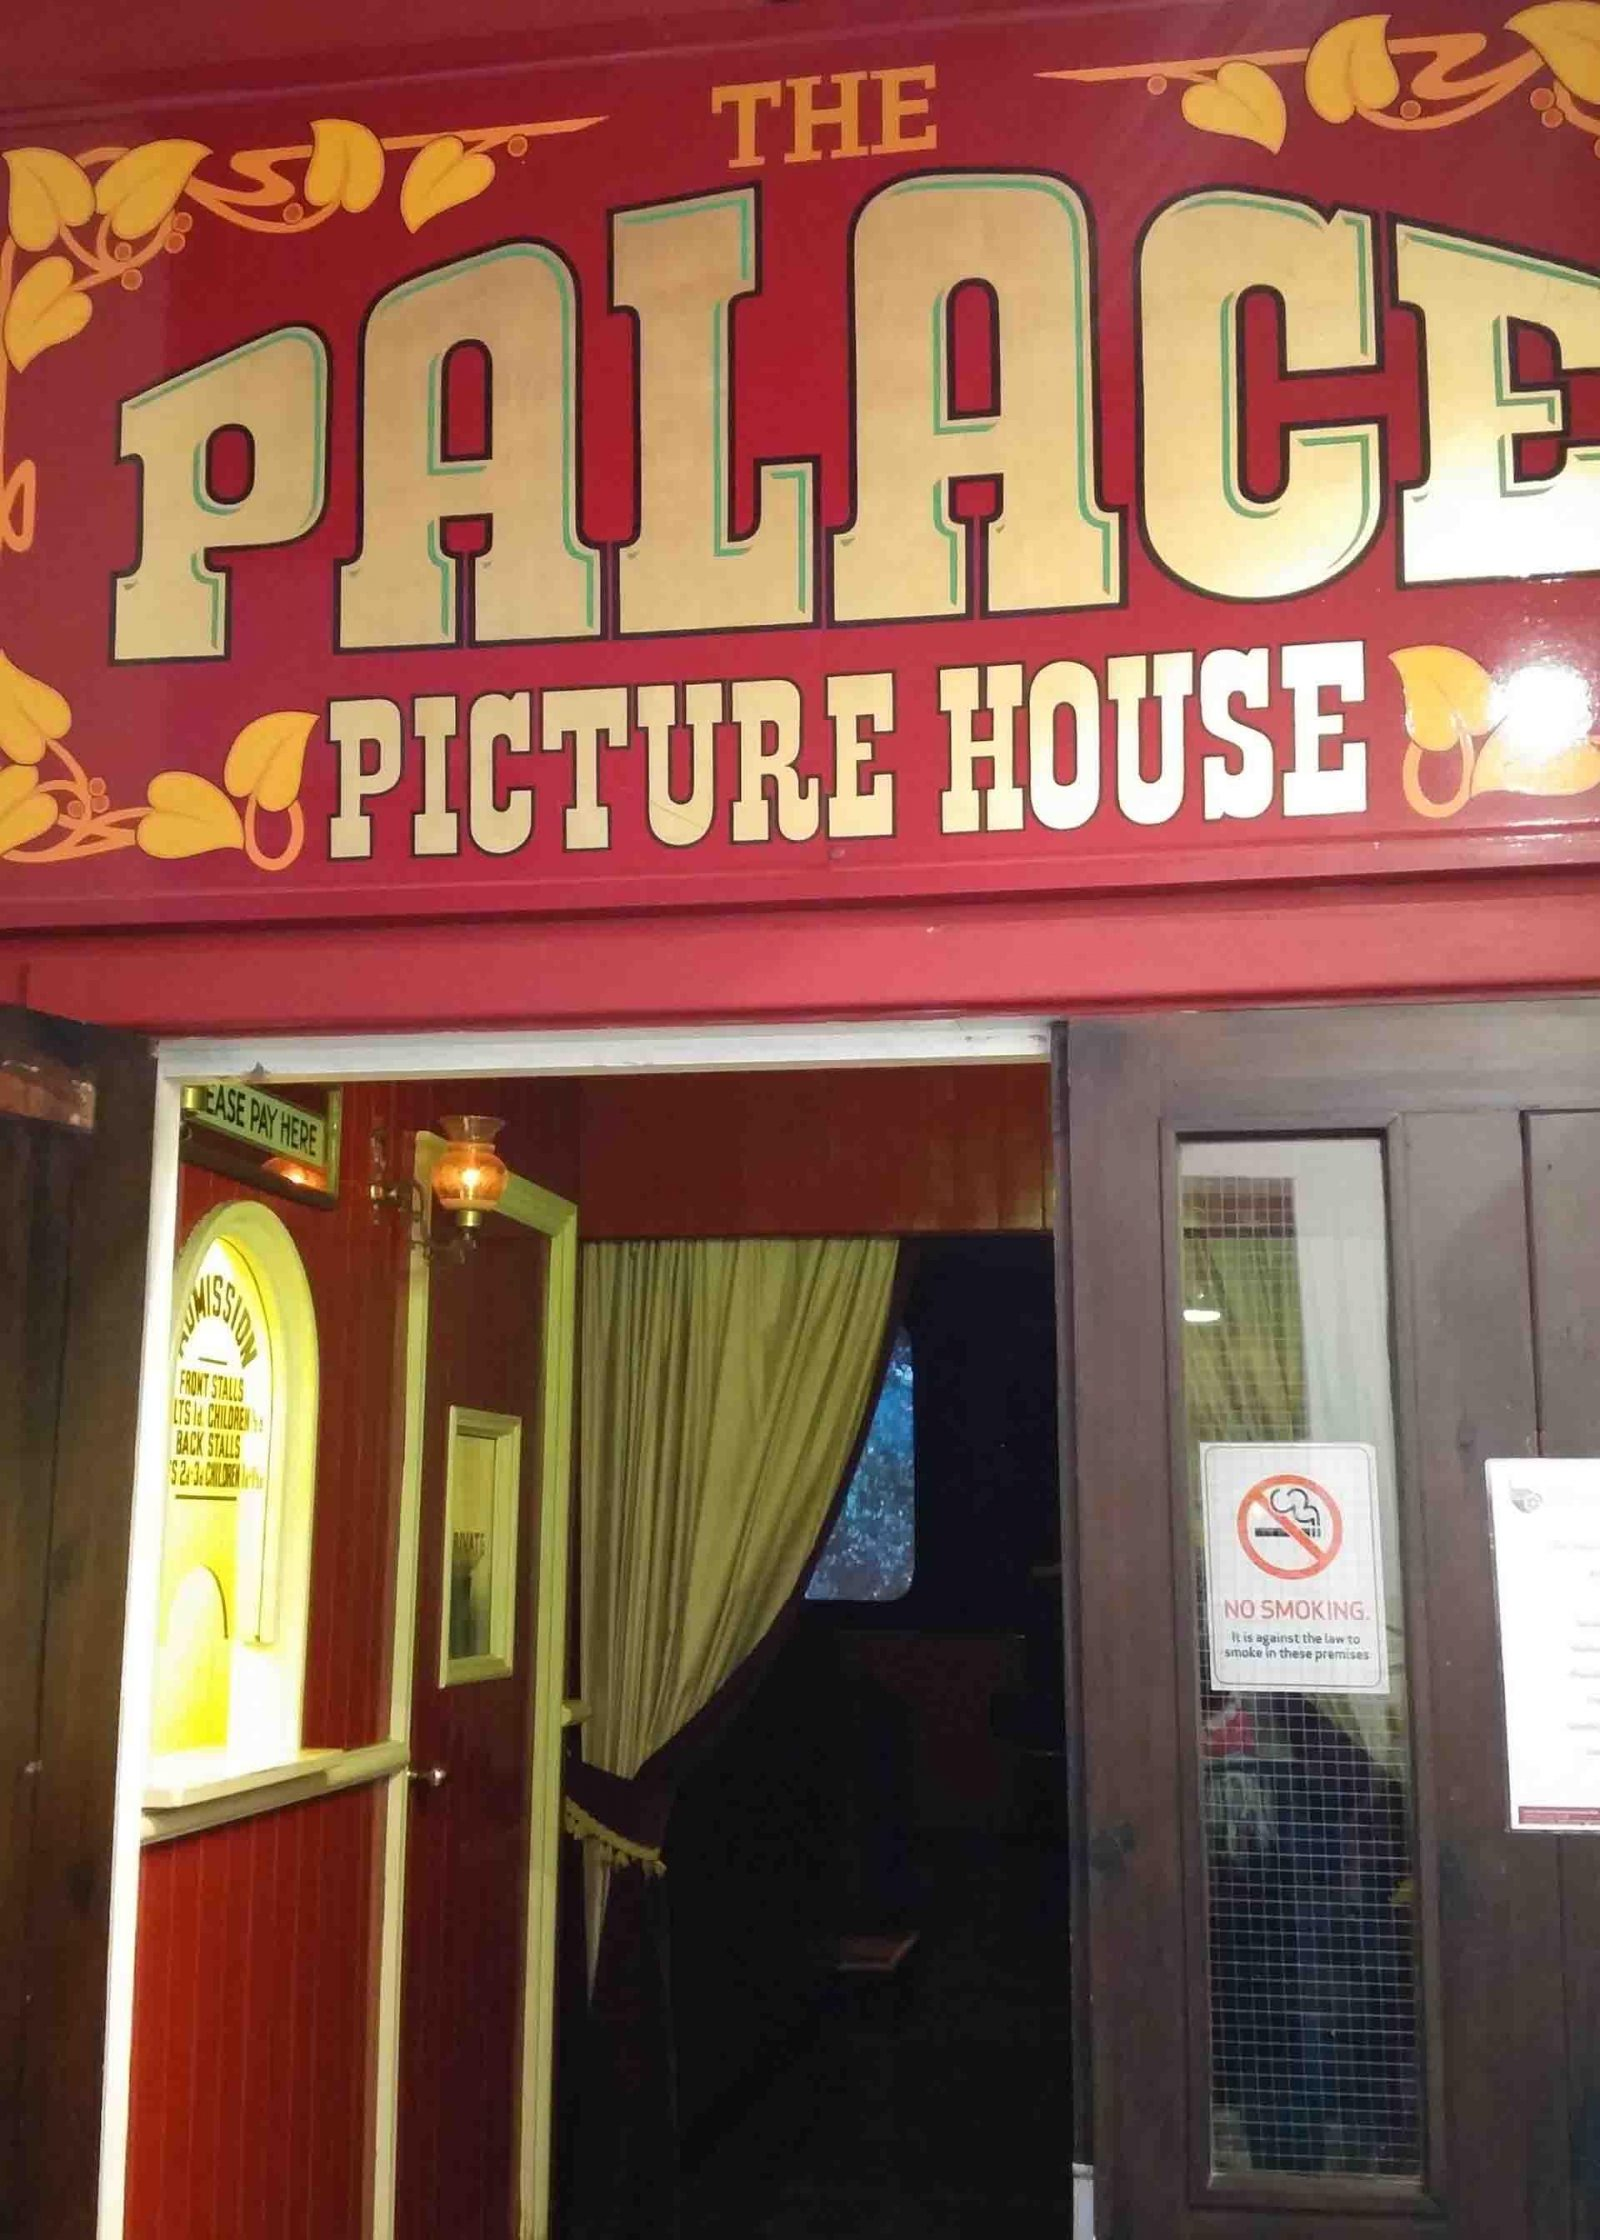 Discovering Leeds Industrial Museum with kids on Falcondale Life blog. The Palace Picture House cinema